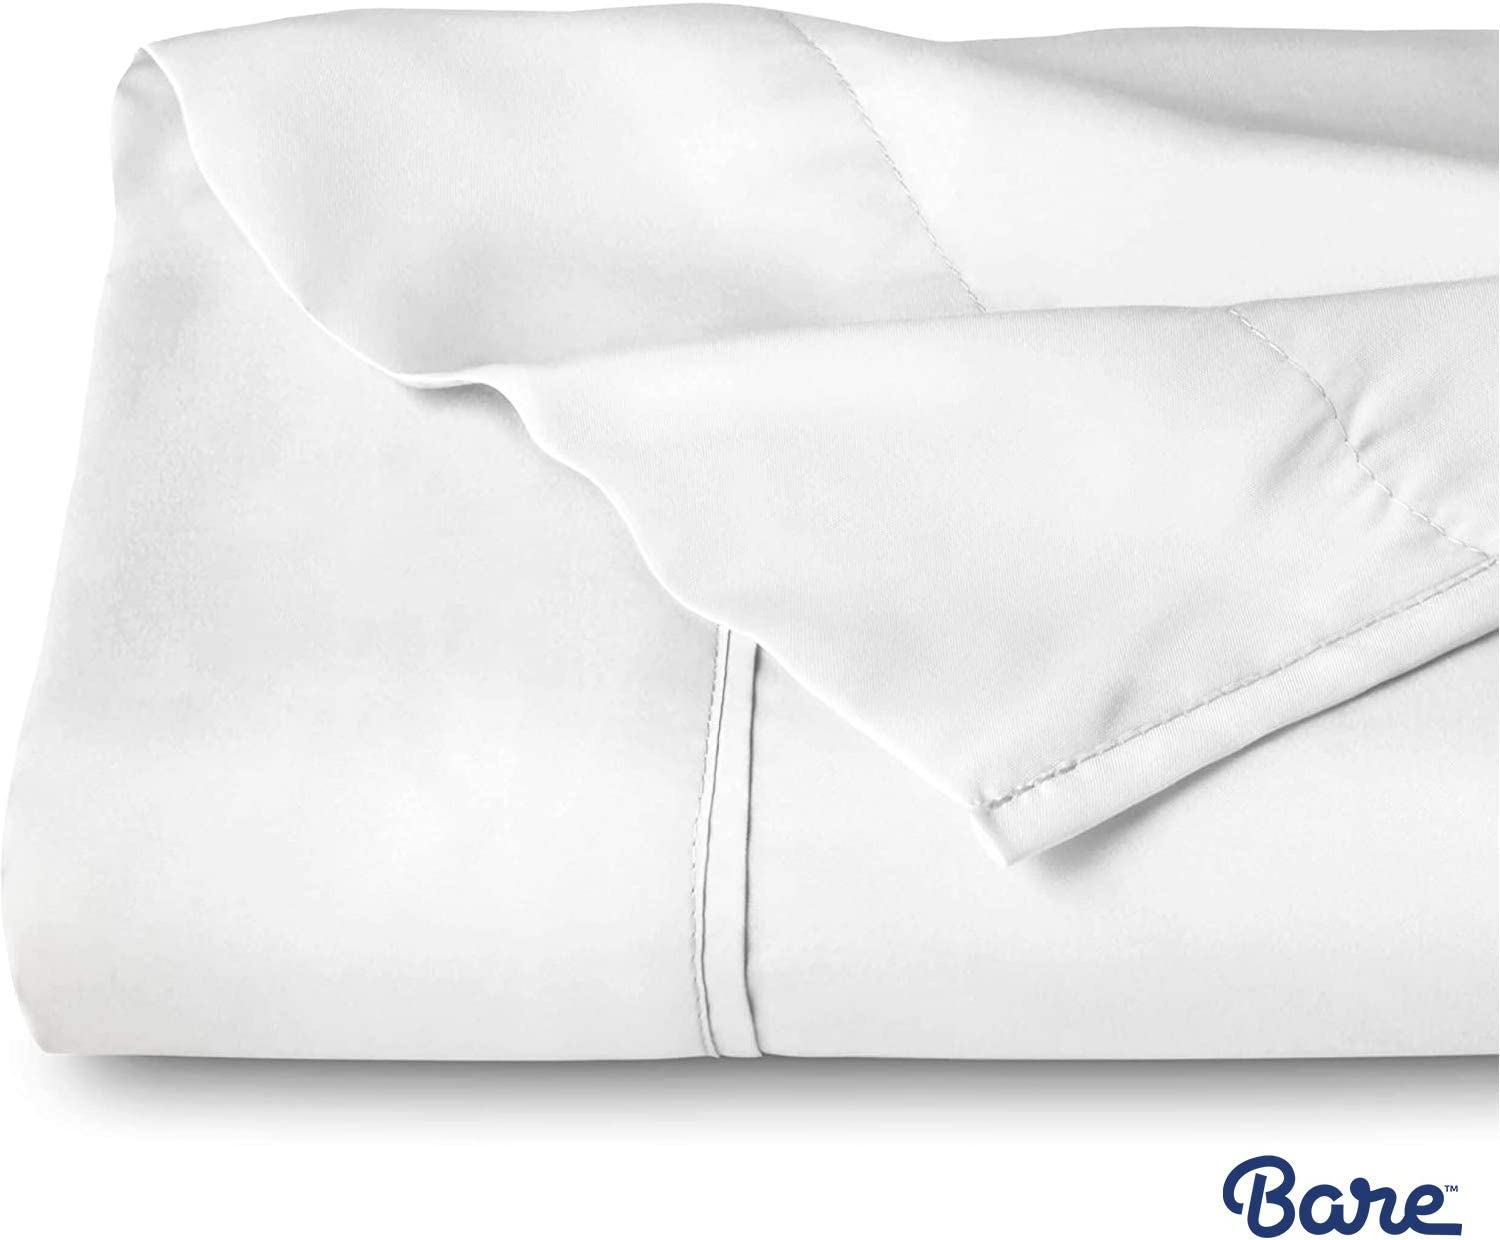 Bare Home Flat Top Sheet Premium 1800 Ultra-Soft Microfiber Collection - Double Brushed, Hypoallergenic, Wrinkle Resistant, Easy Care (King, White) -